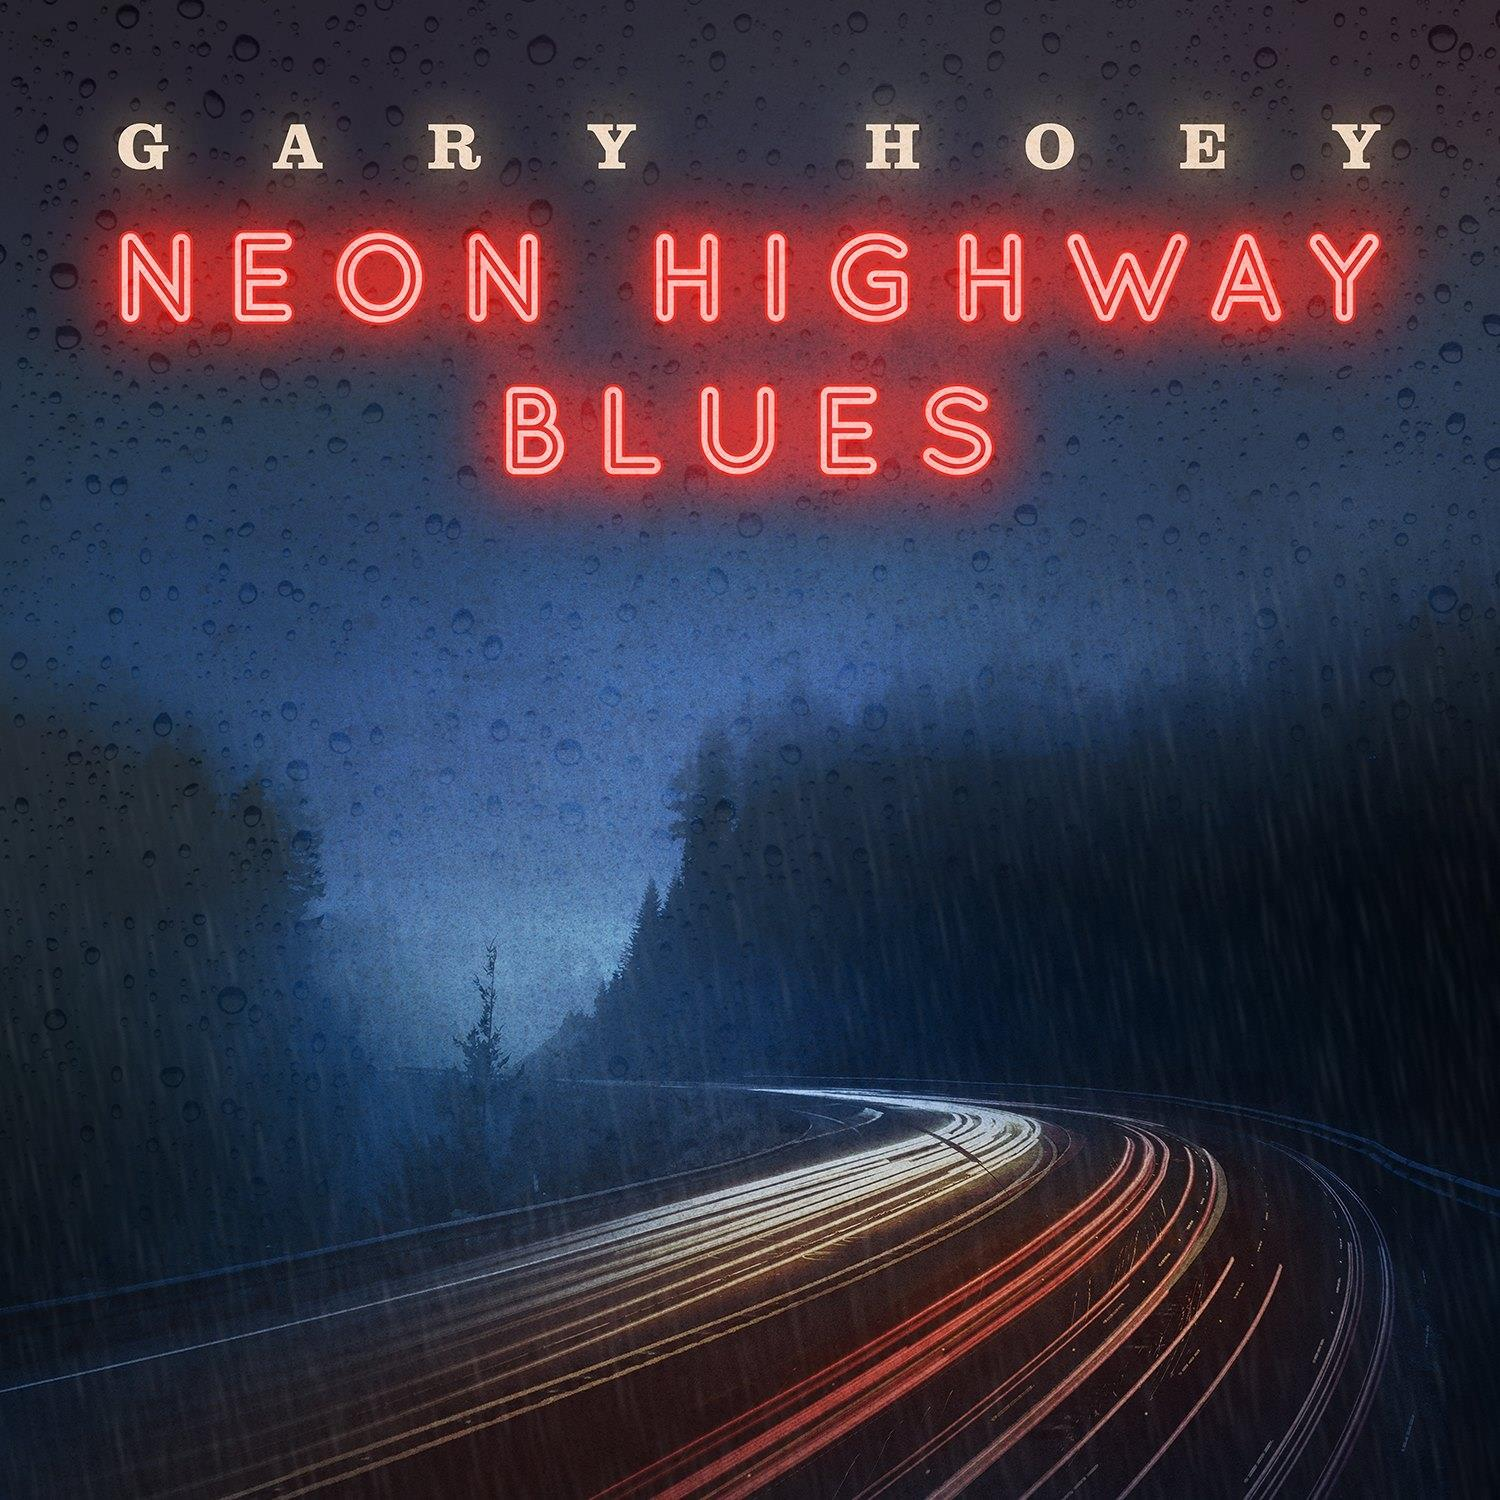 Gary-Hoey-Neon-Highway-Blues.jpg